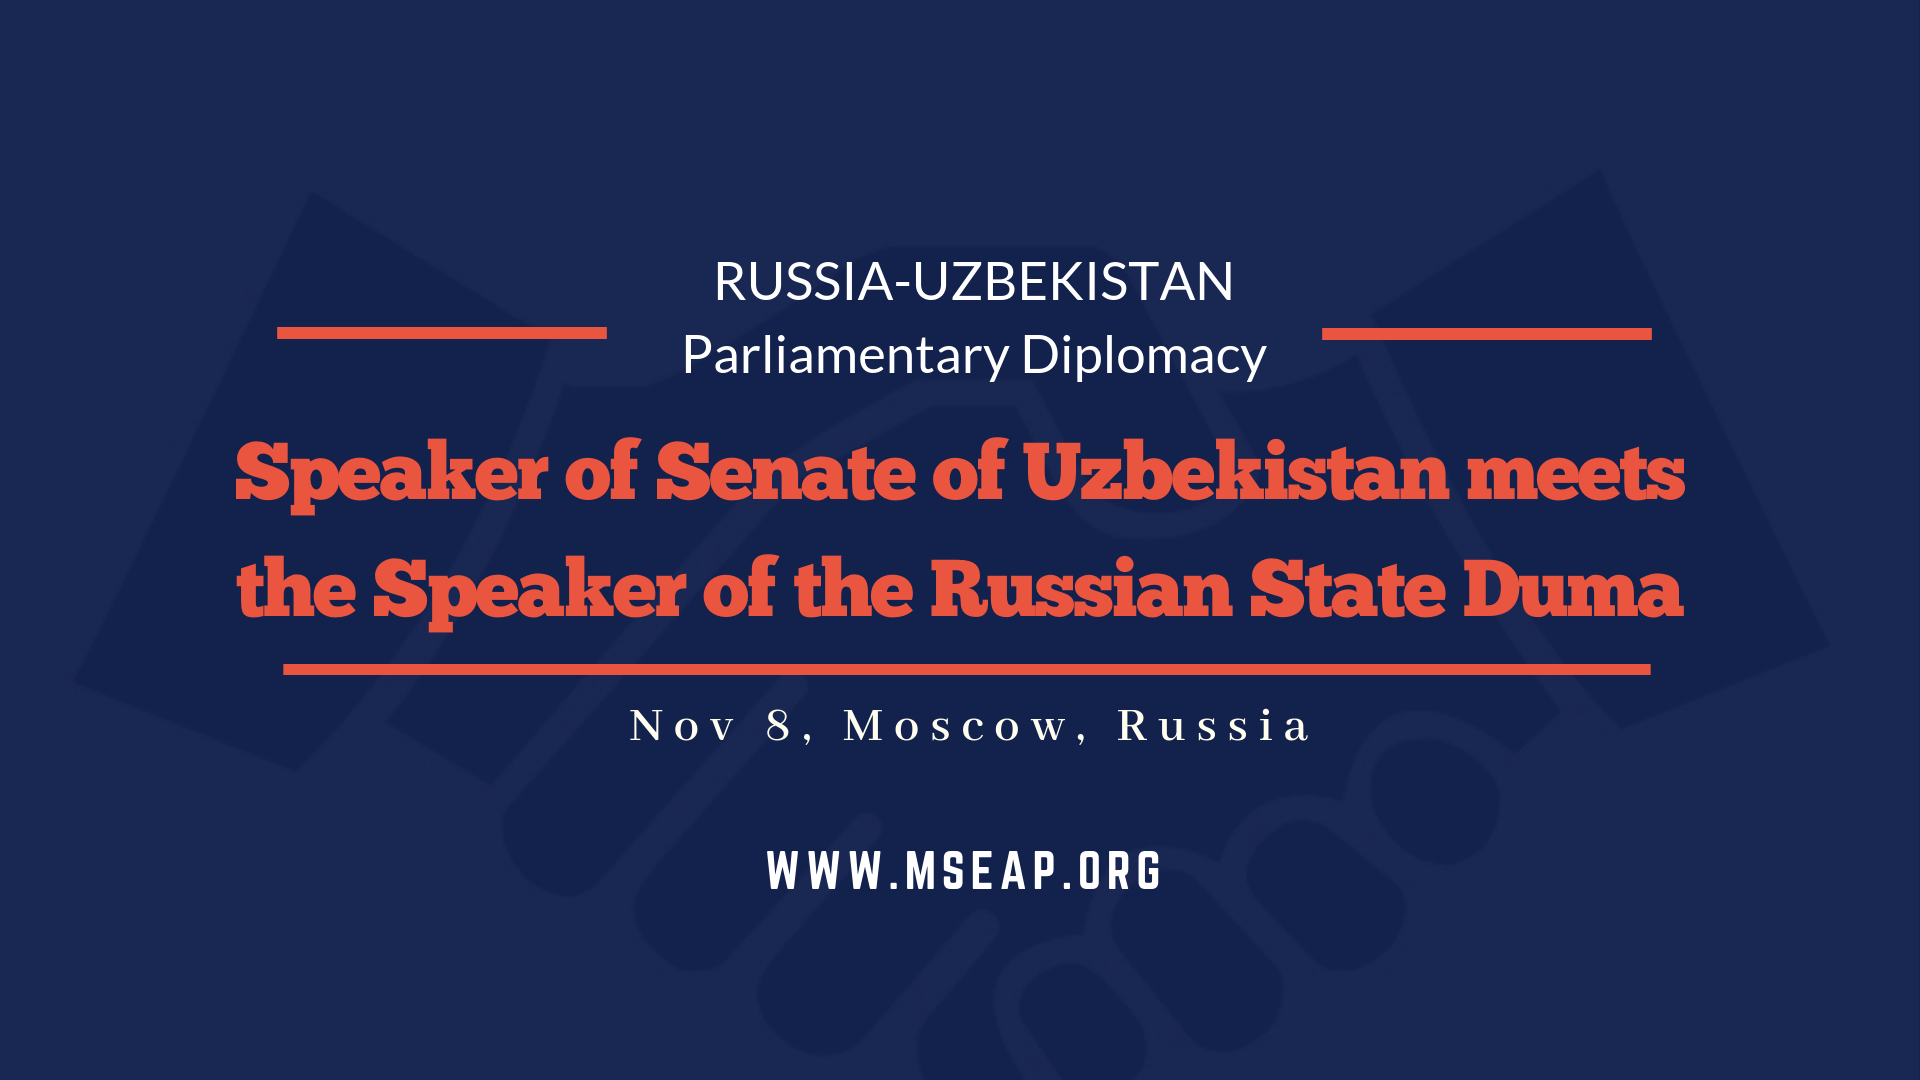 Speaker of the Senate of Uzbekistan meets the Speaker of the State Duma of Russia